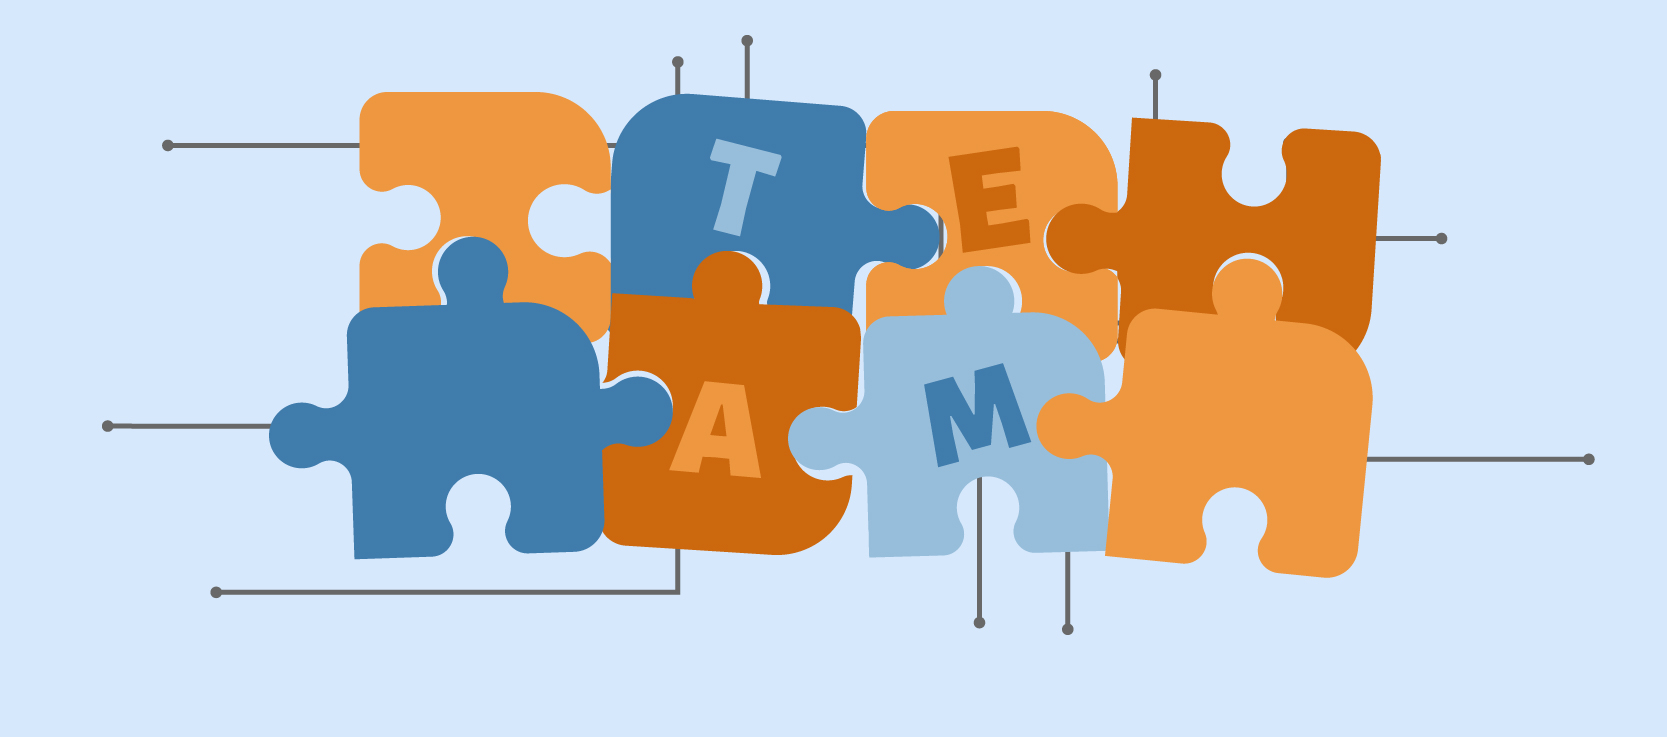 Team management models and theory